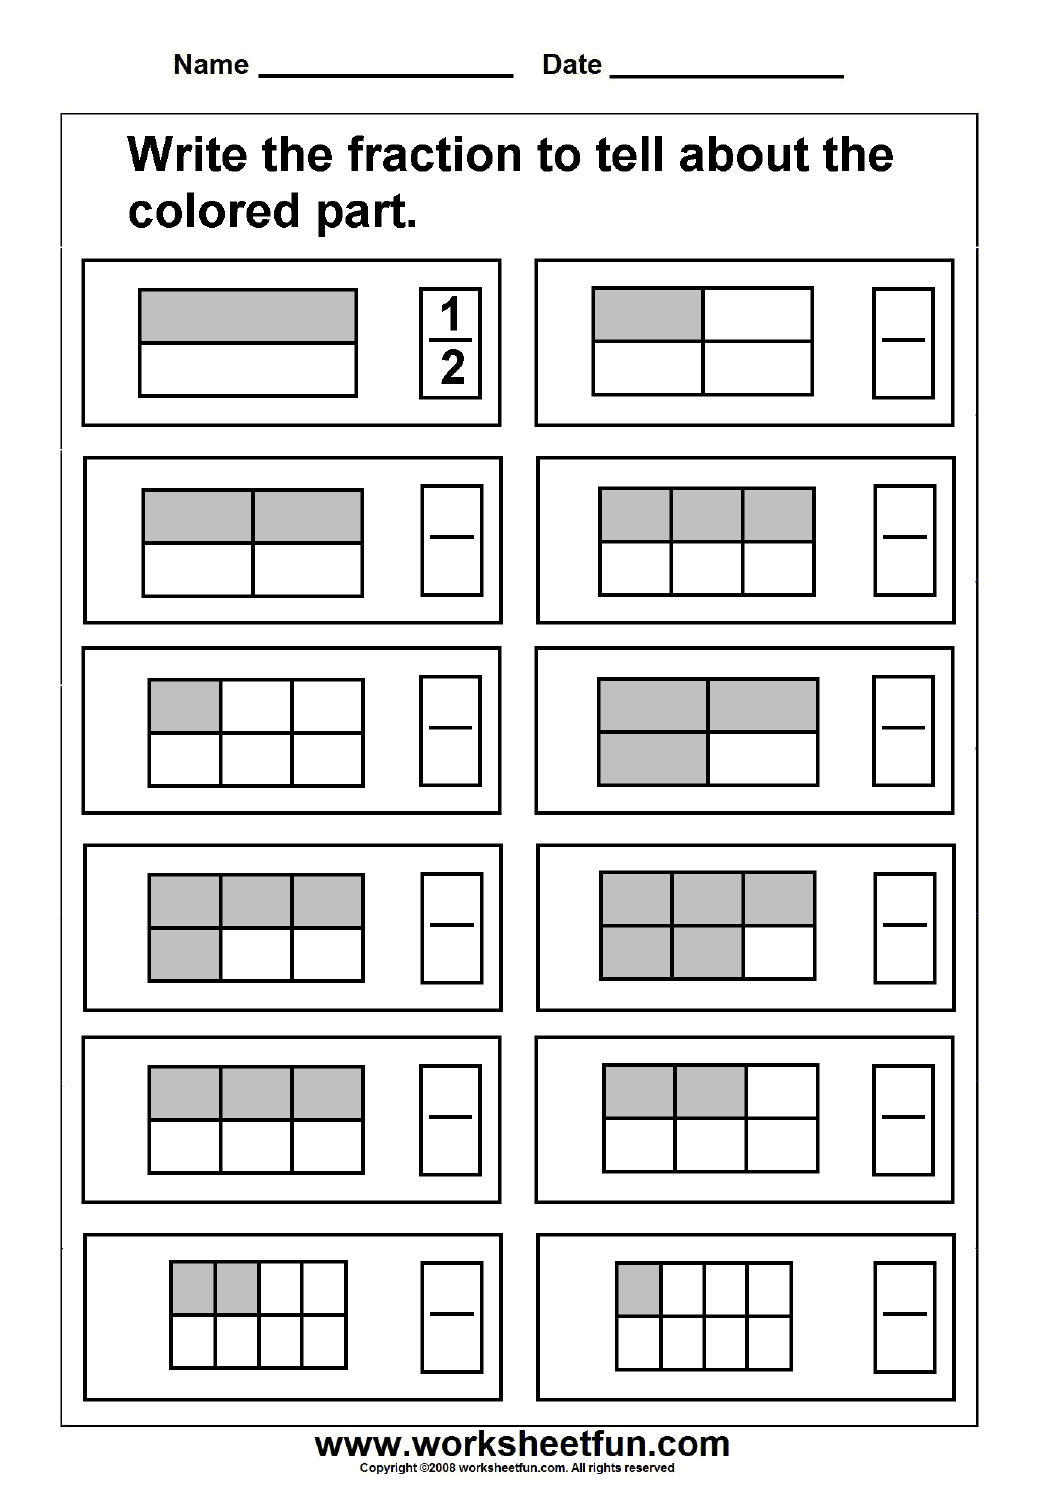 Fraction FREE Printable Worksheets Worksheetfun – Fractions Worksheet Grade 3